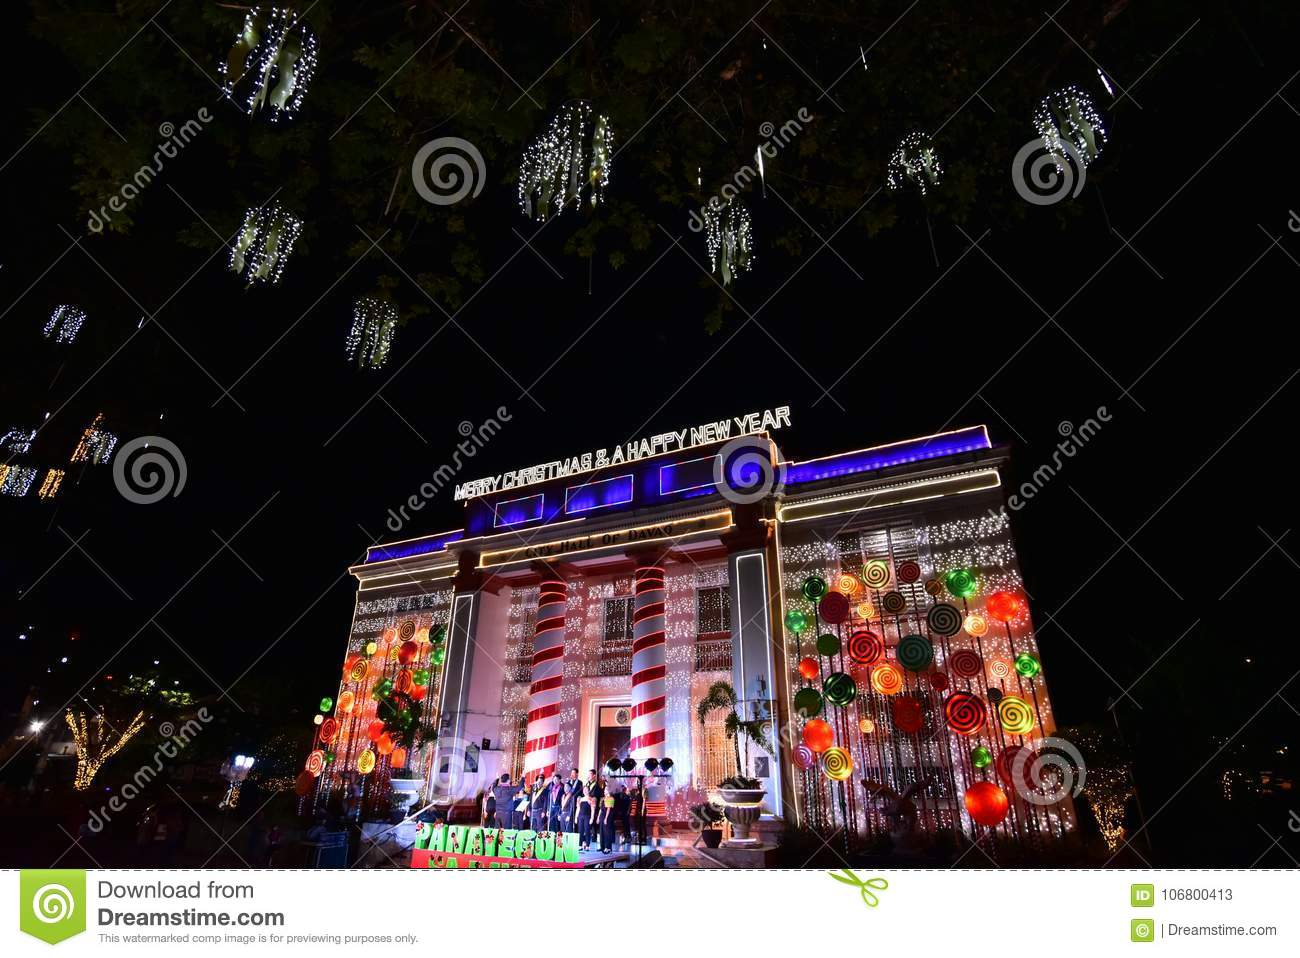 Christmas in Davao City, Philippines